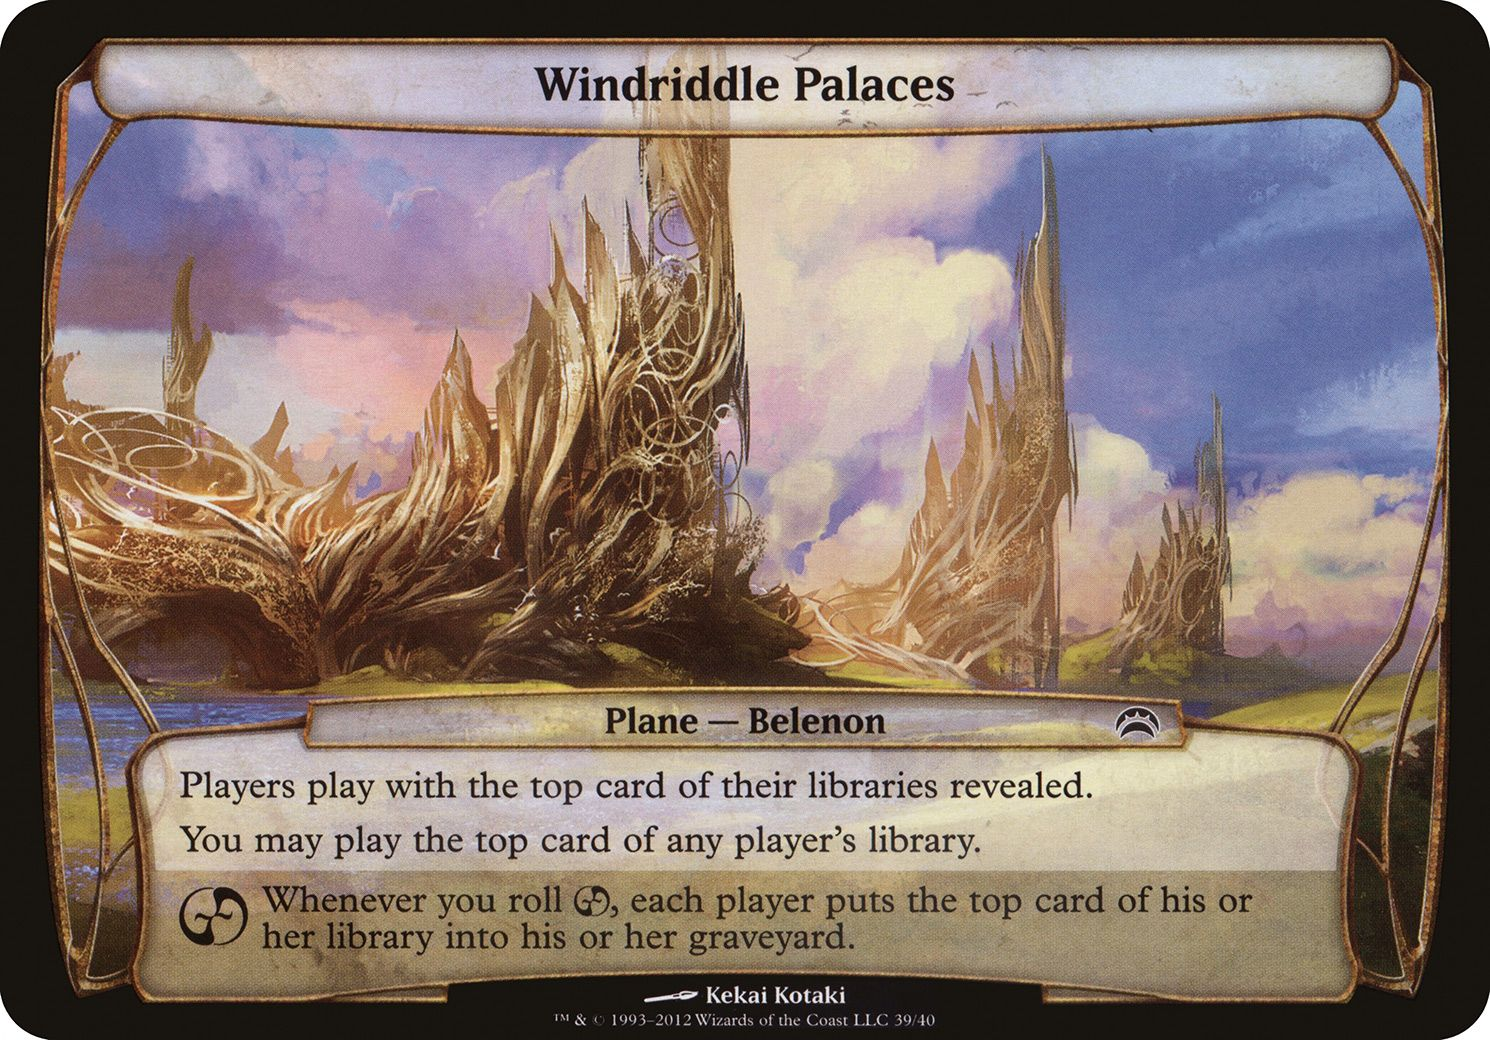 Plane Planechase 2012 Edition Windriddle Palaces Cards Card Layout Card Games